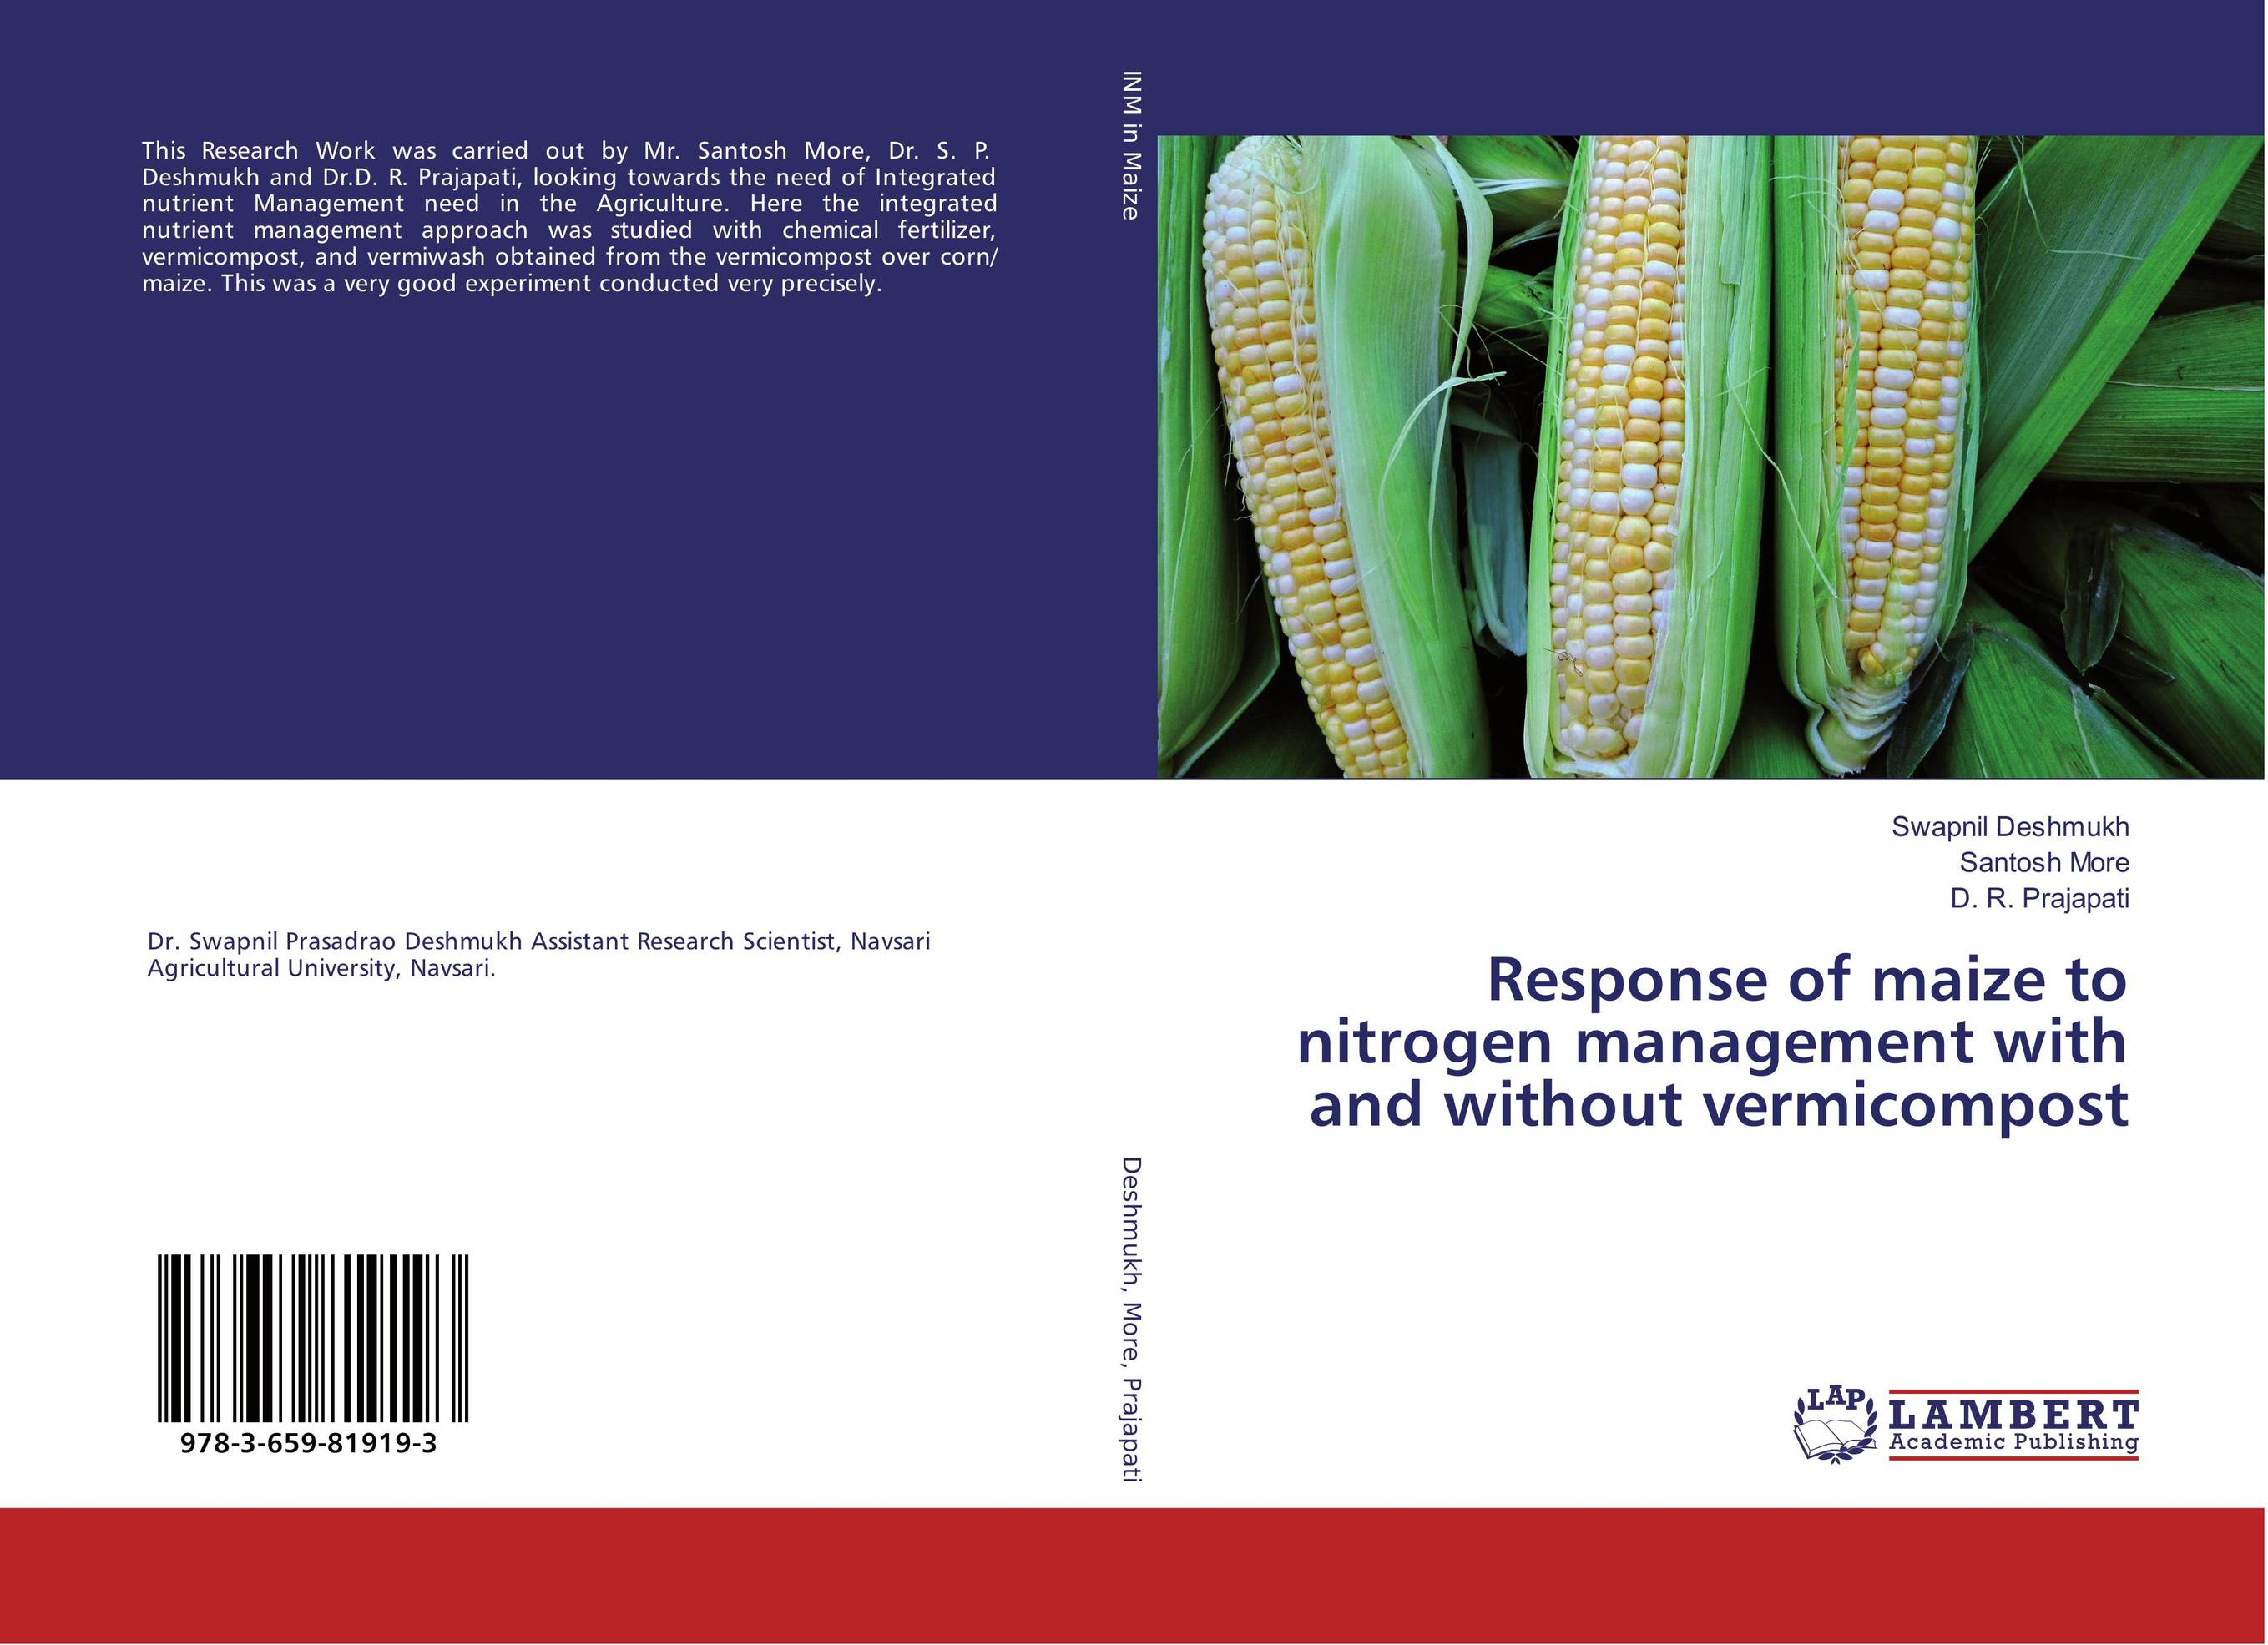 Response of maize to nitrogen management with and without vermicompost